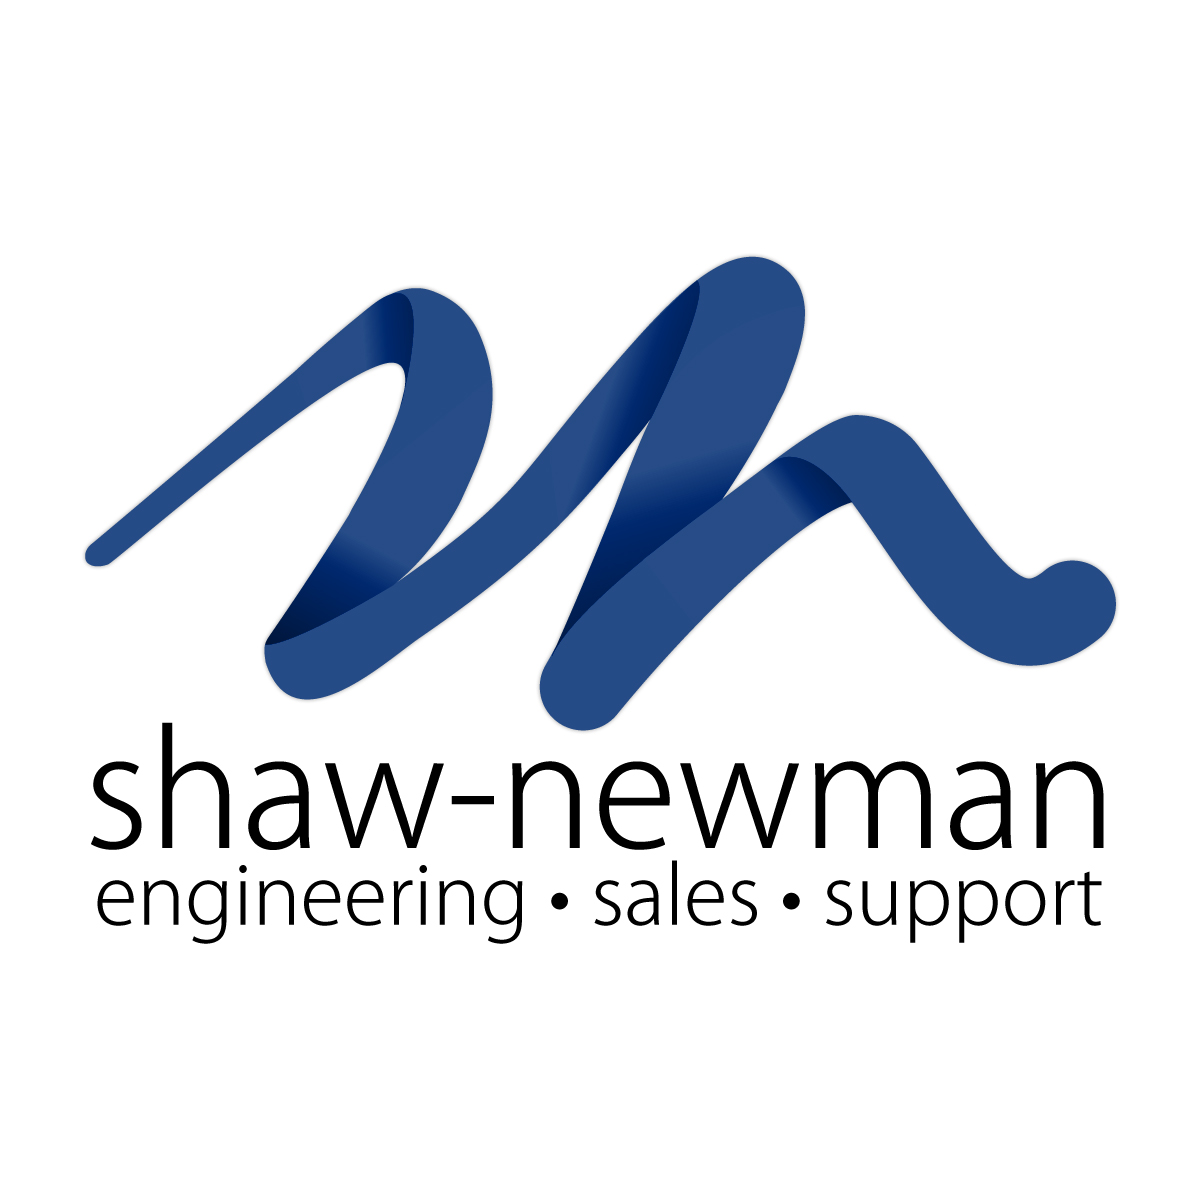 shaw-newman